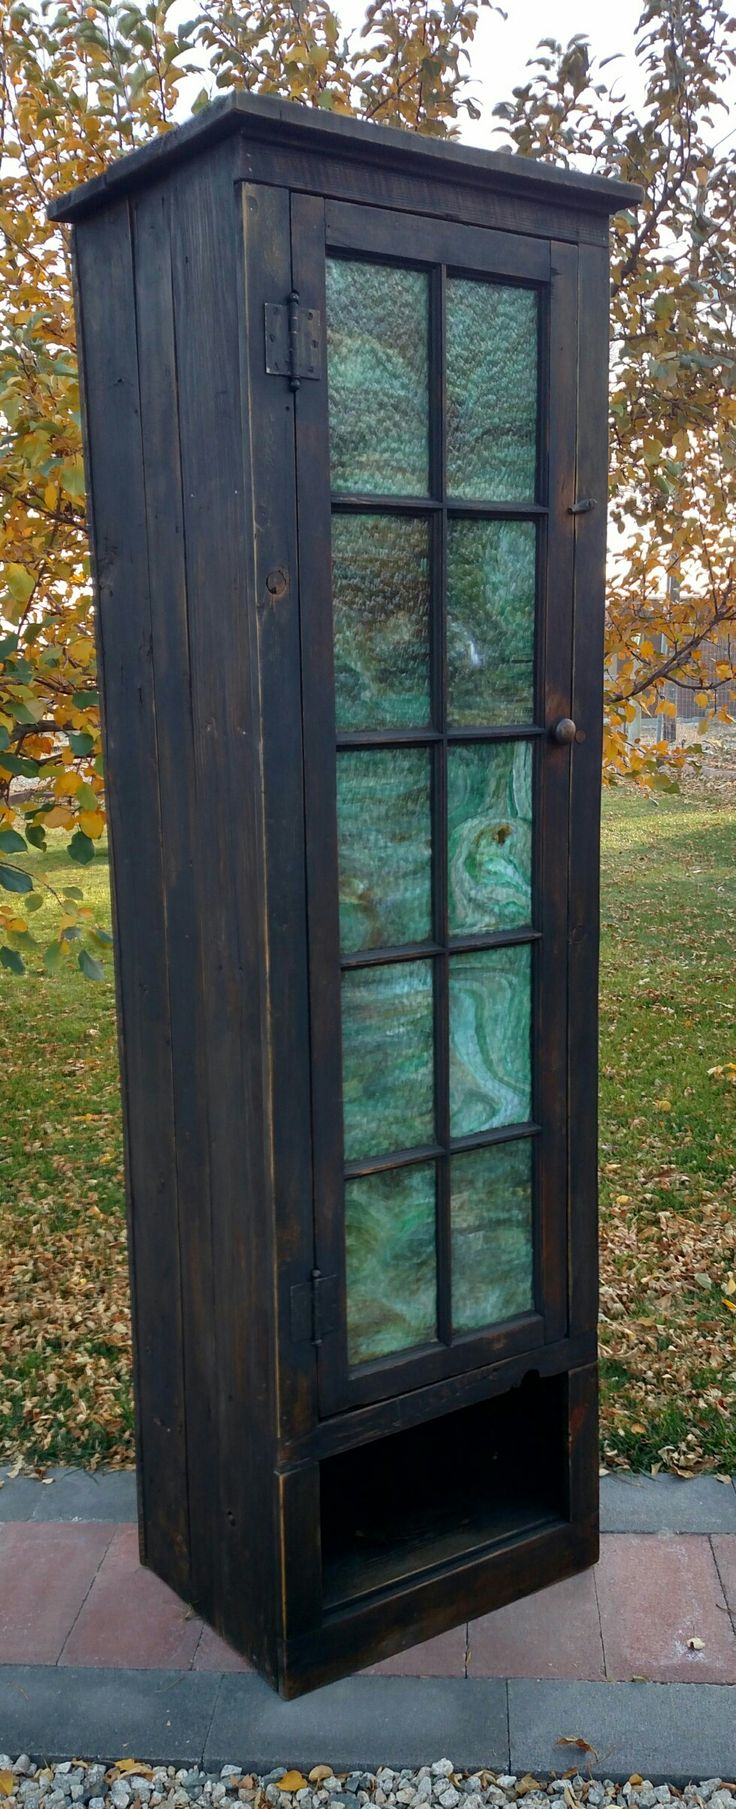 Upcycled Chimney Cupboard is made from 1900s wood from a little Country School near Red Lodge  MT(Jackson School) with an antique green slag glass window.